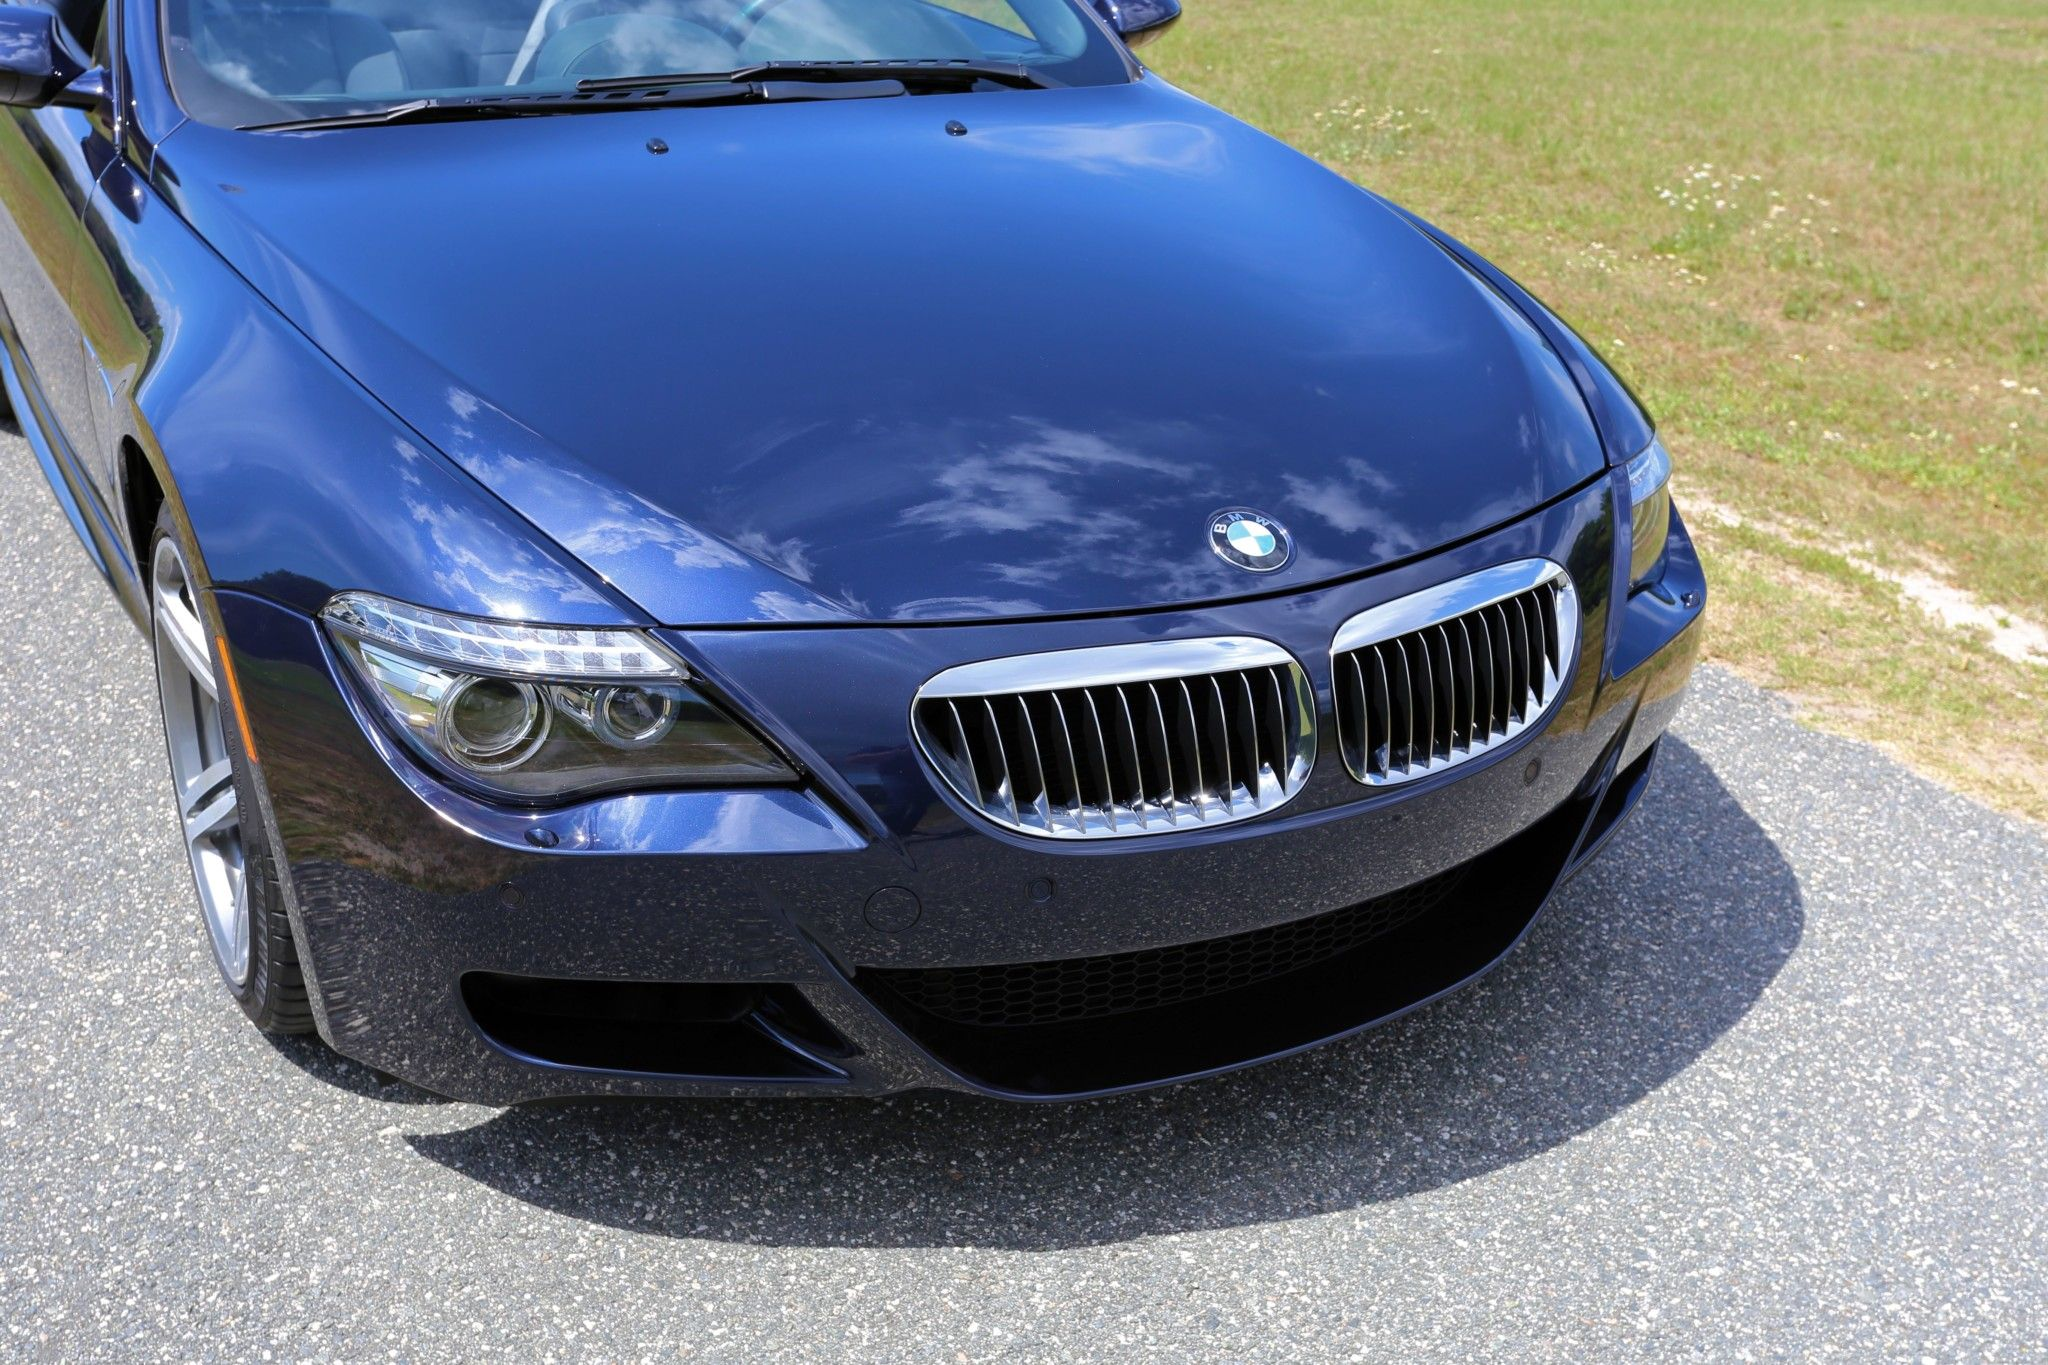 20kMile 2008 BMW M6 Convertible in 2020 Bmw m6, Bmw